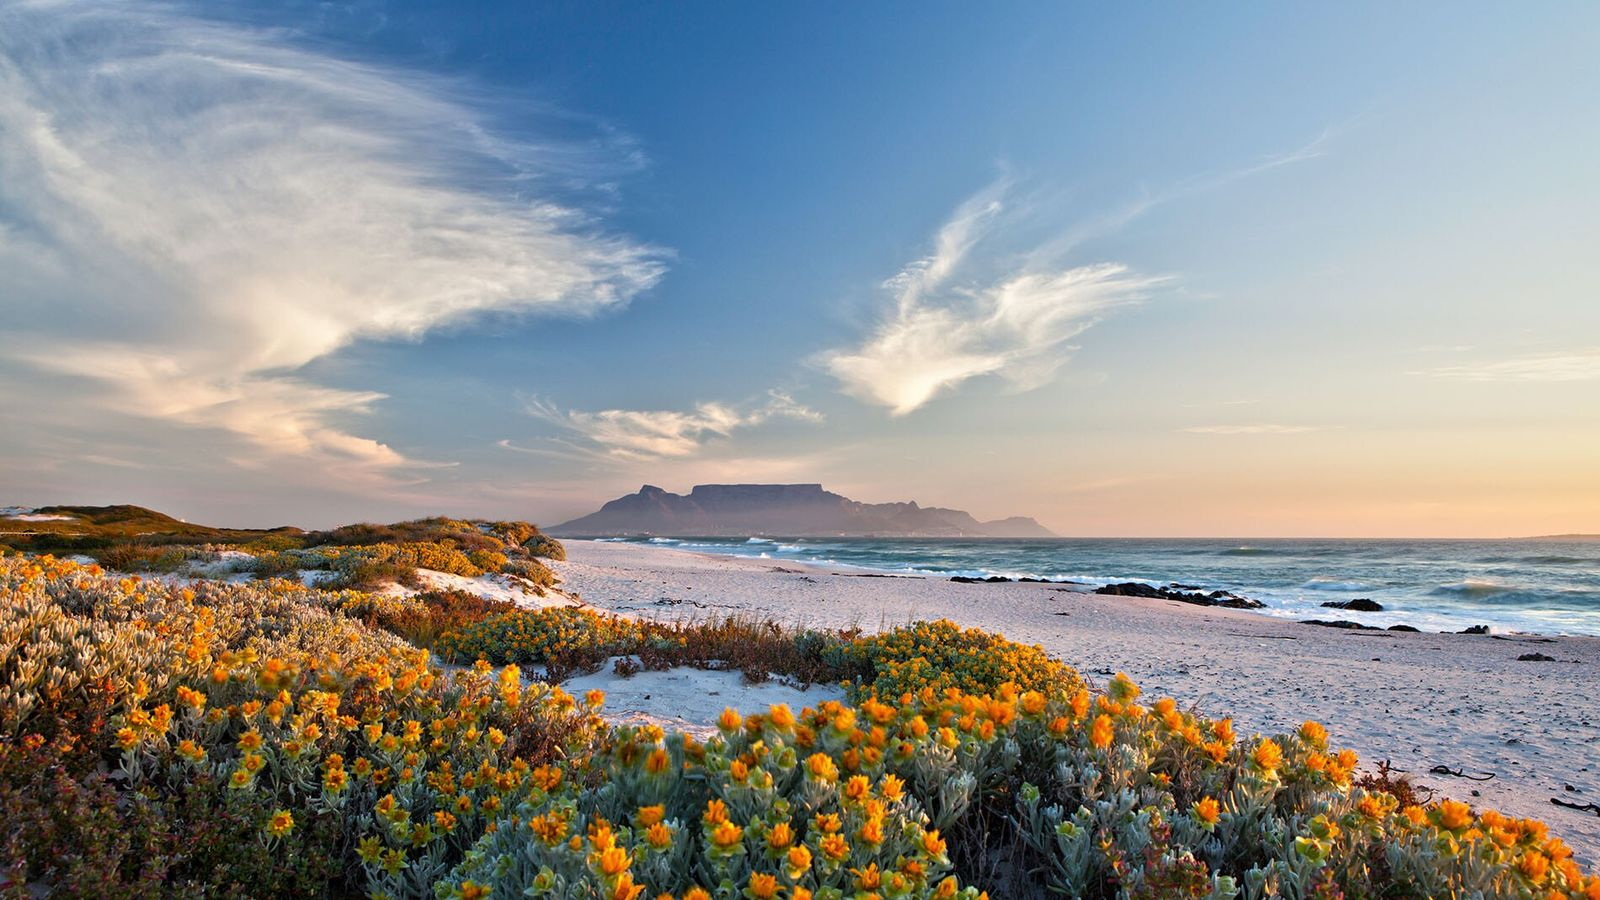 View of Table Mountain from Bloubergstrand, South Africa.